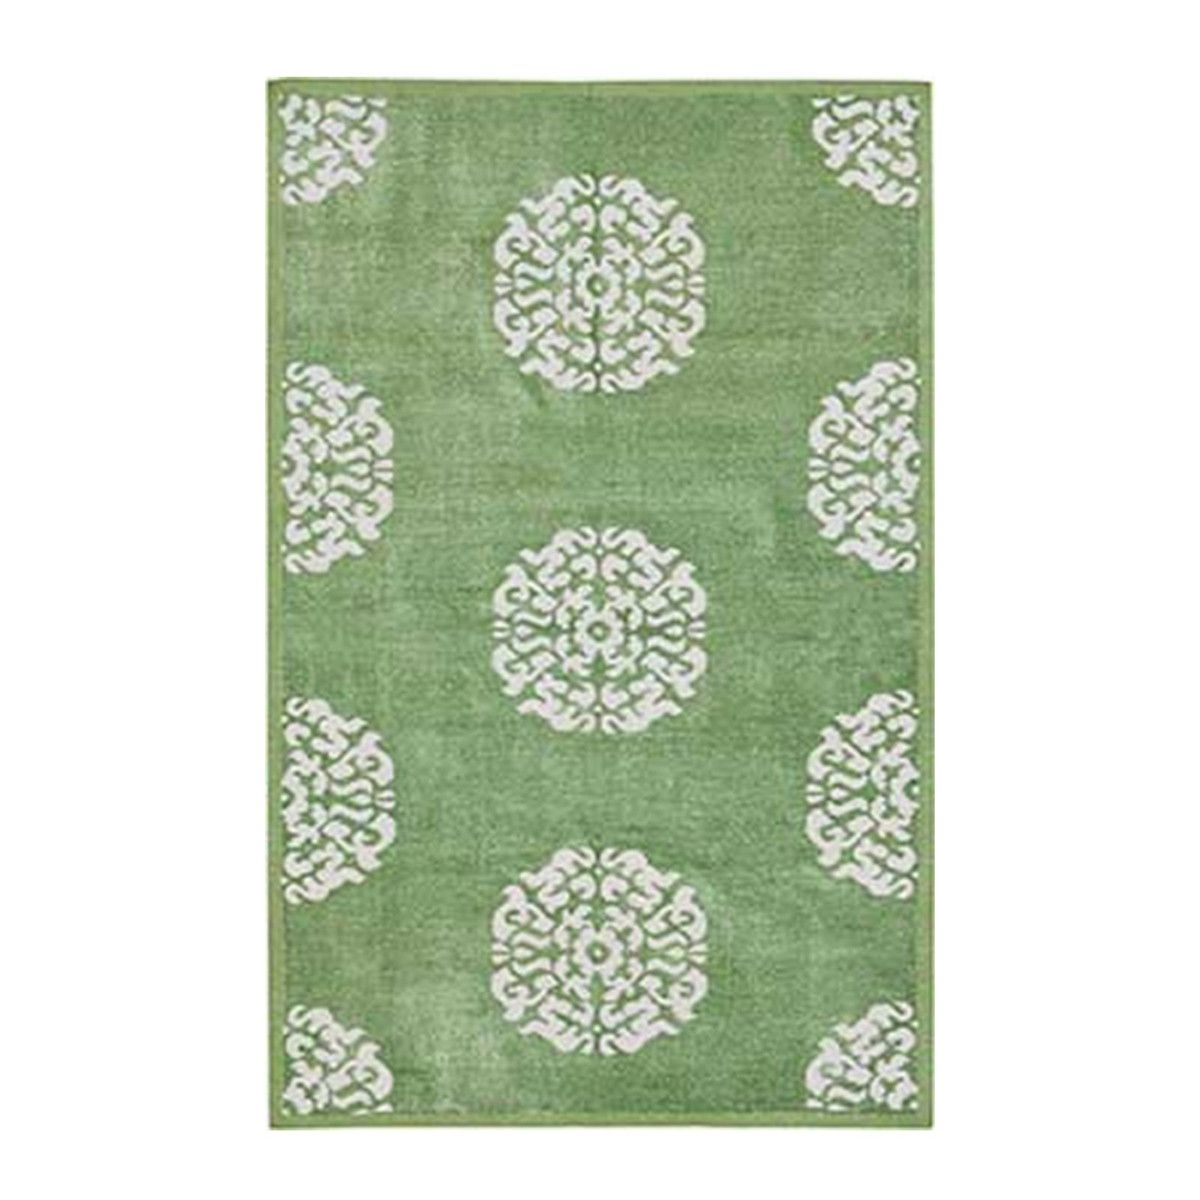 Apple Mandala Chenille Metallic Carpet Madeline Weinrib Patterned Bathroom Rugs Green Bathroom Rugs Lime Green Bathroom Rugs